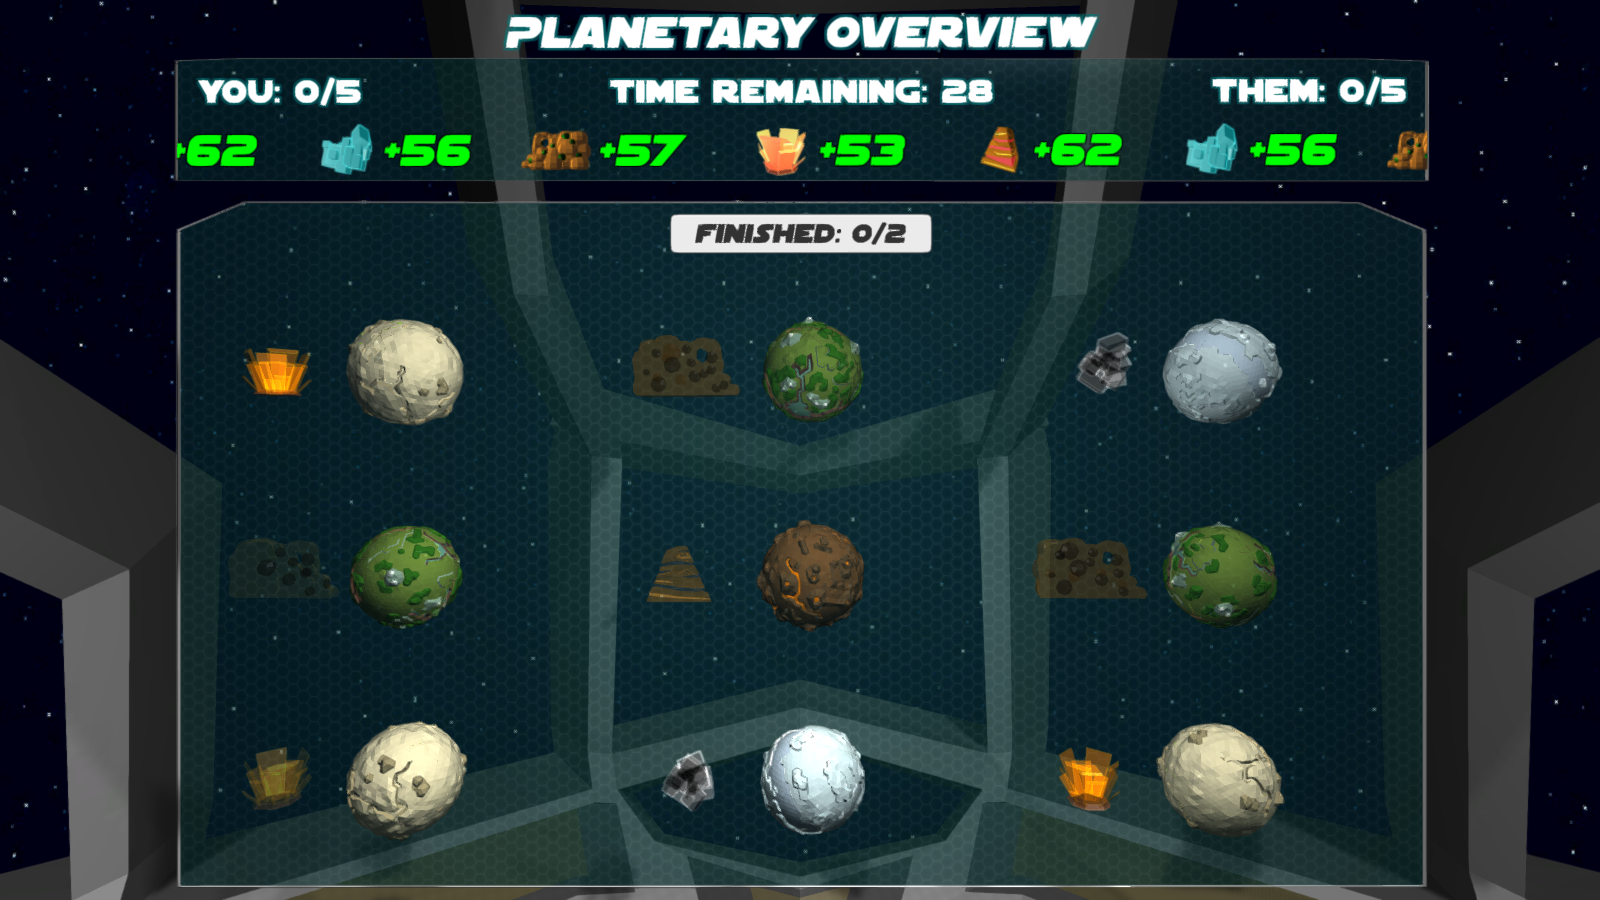 Planetary Overview - Game Start